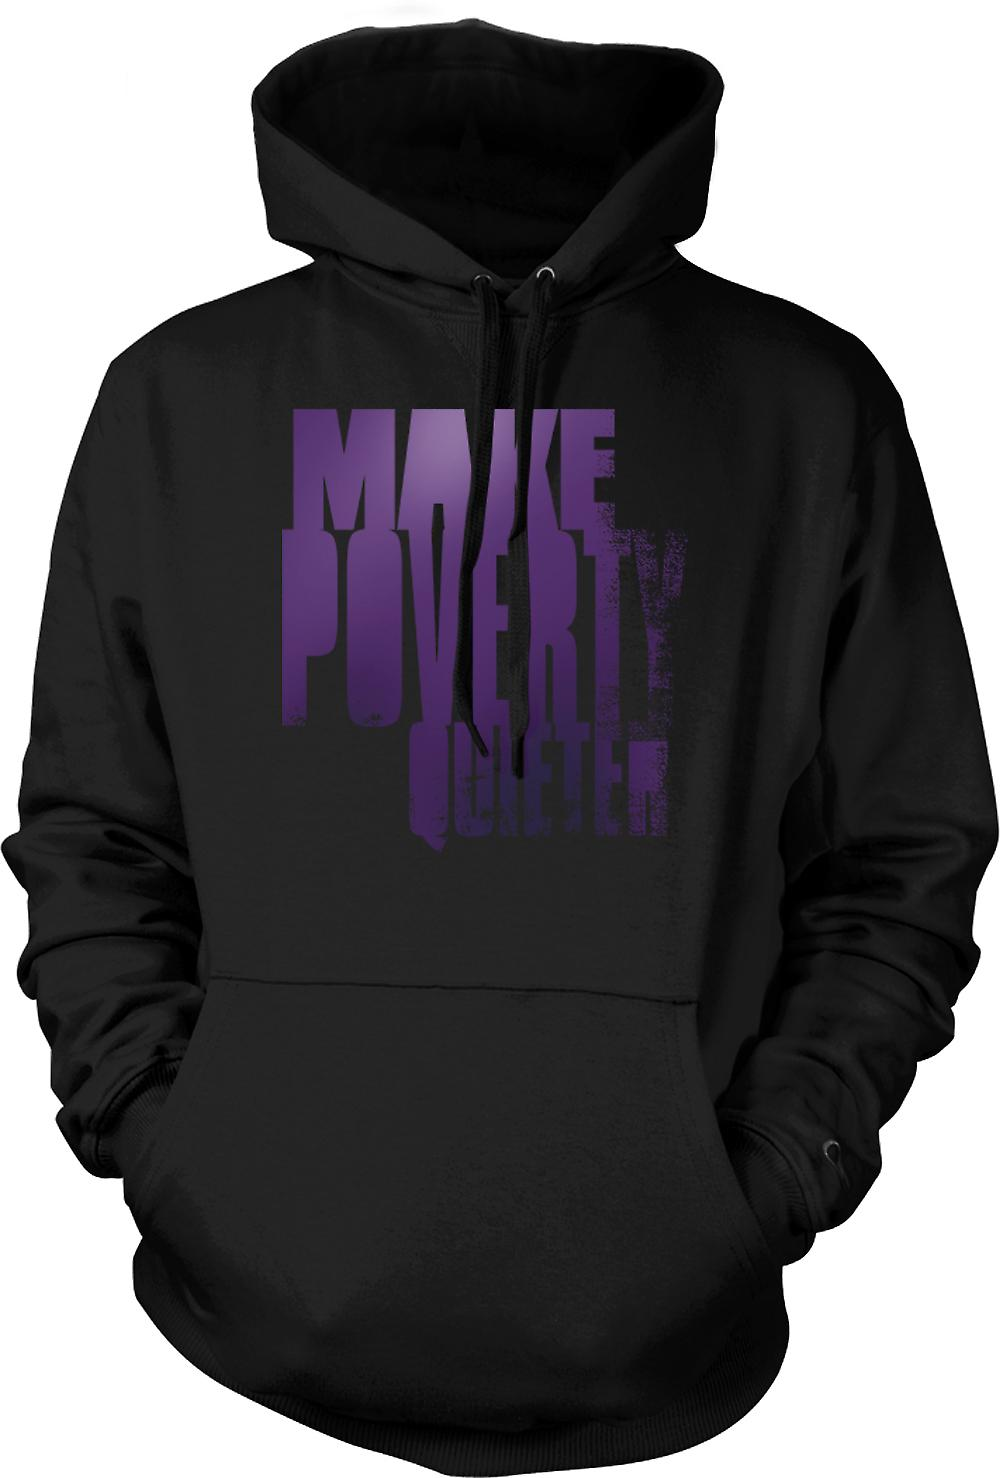 Mens Hoodie - Make Poverty Quieter - Brilliant Funny